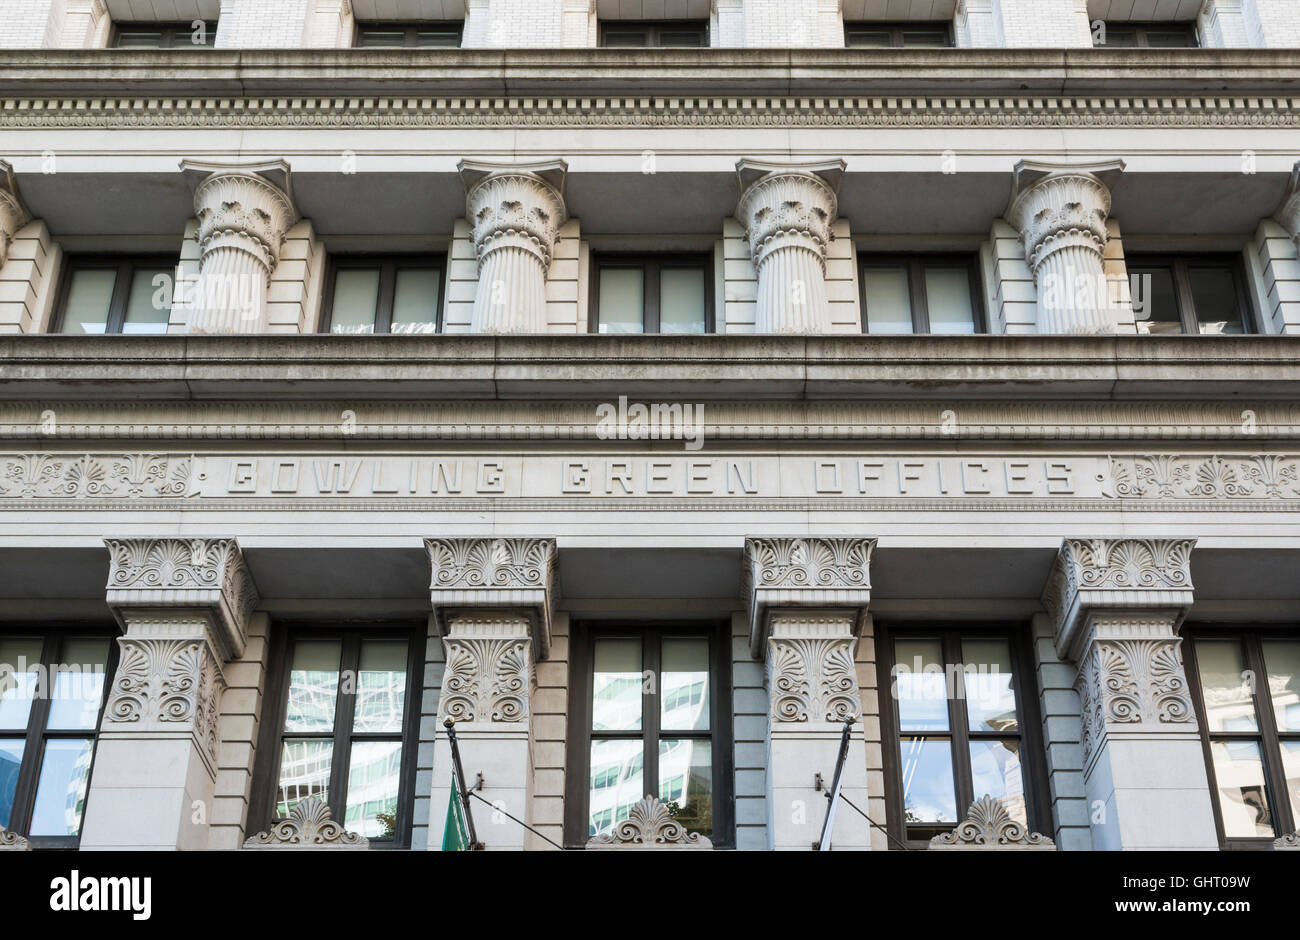 Close up of architectural detail of Bowling Green Offices building, a landmark, in the financial district of New - Stock Image